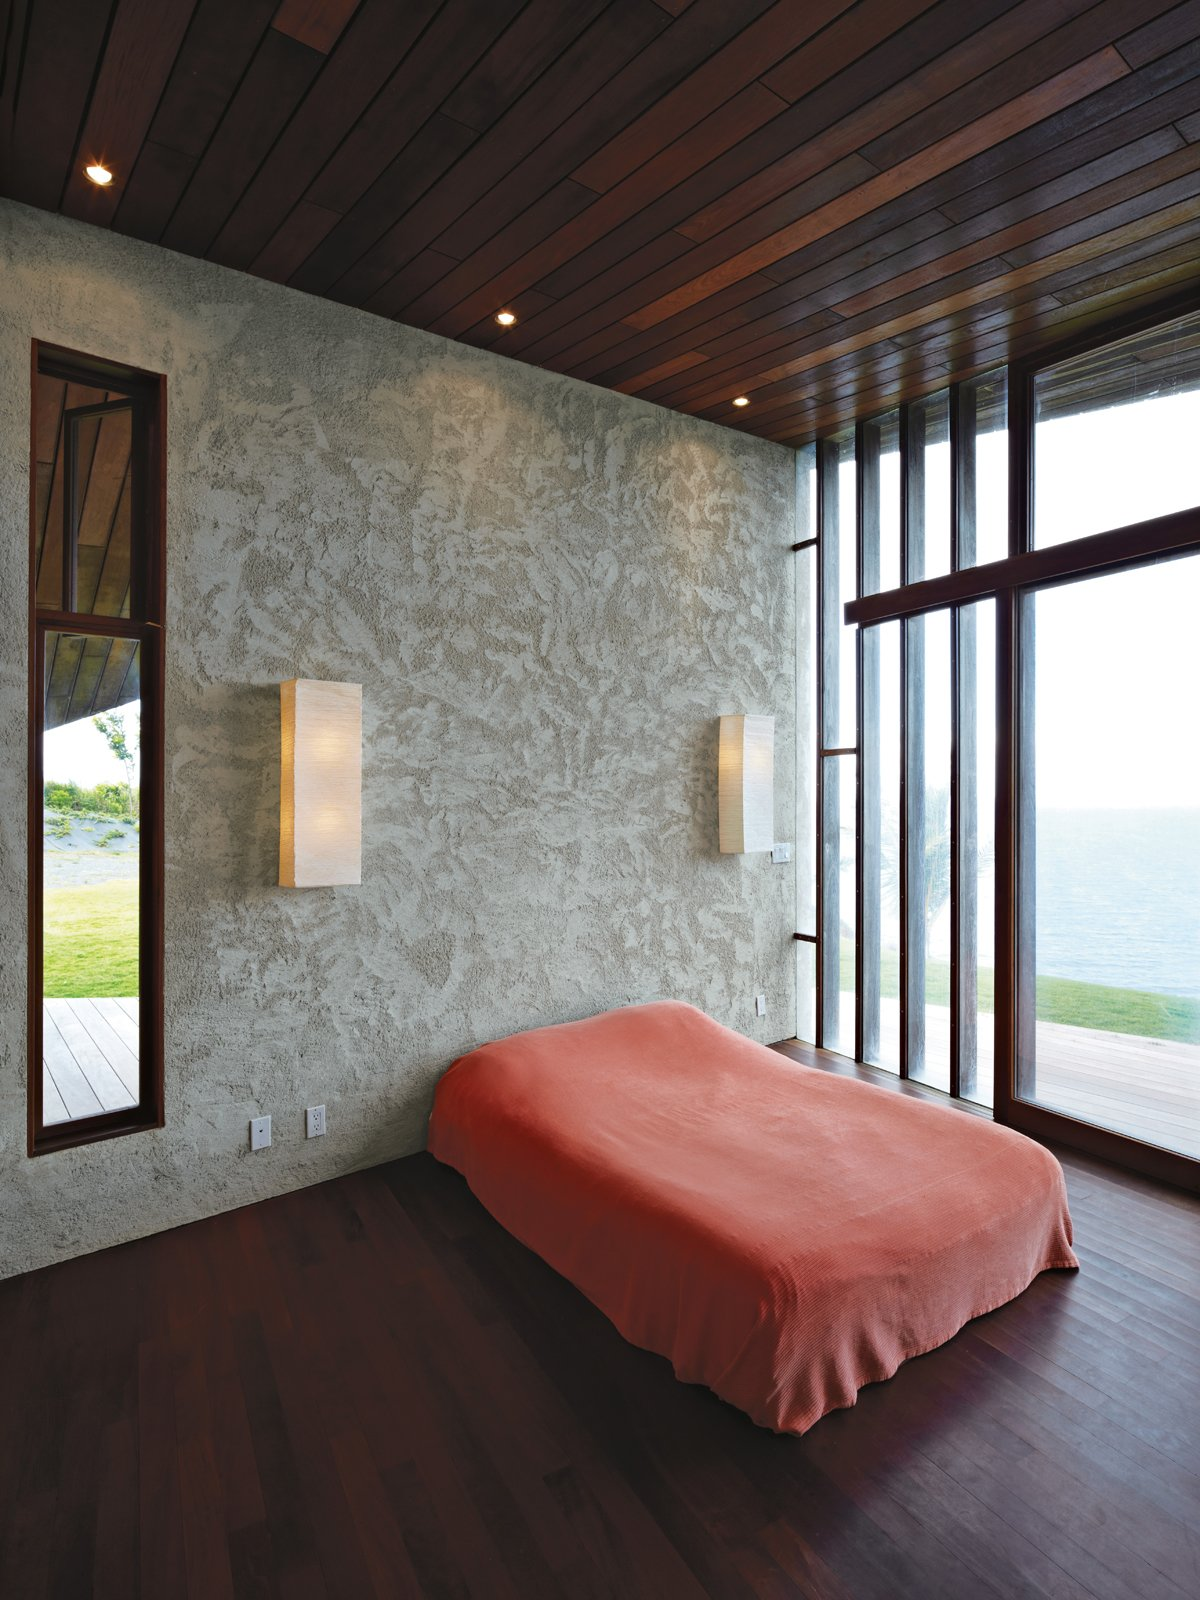 In the master bedroom, a basic platform bed and Ikea wall lights keep the attention on the ocean views afforded by the floor-to-ceiling windows. Tagged: Bedroom, Bed, Dark Hardwood Floor, and Wall Lighting.  Photo 9 of 10 in Clifftop House with Angled Roof in Maui